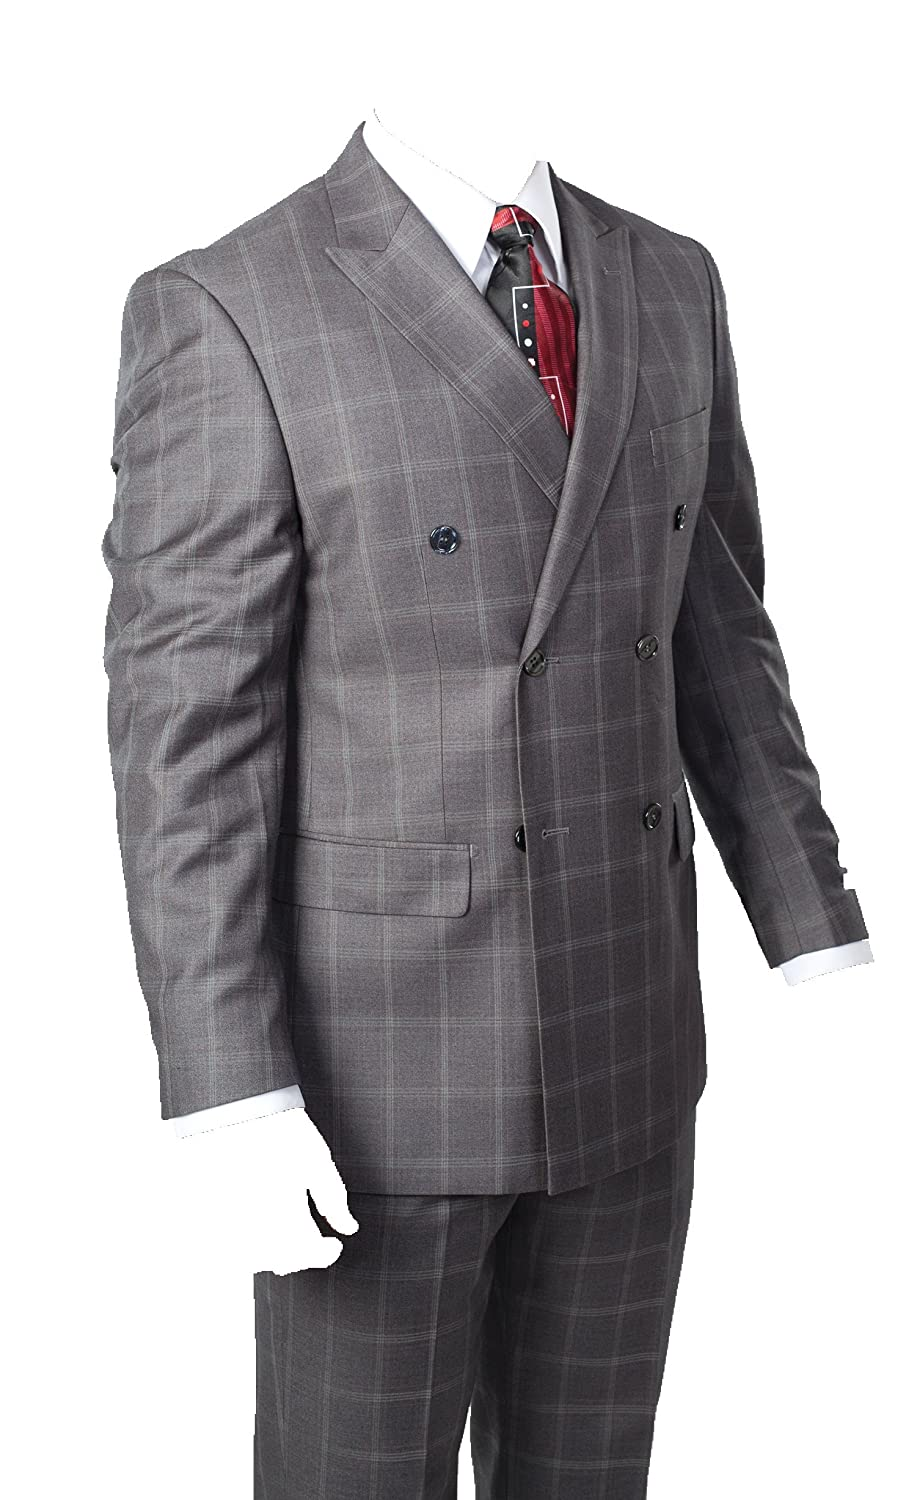 New 1940's Style Zoot Suits for Sale Mens Two Piece Windowpane Plaid Suit (Grey) $119.00 AT vintagedancer.com